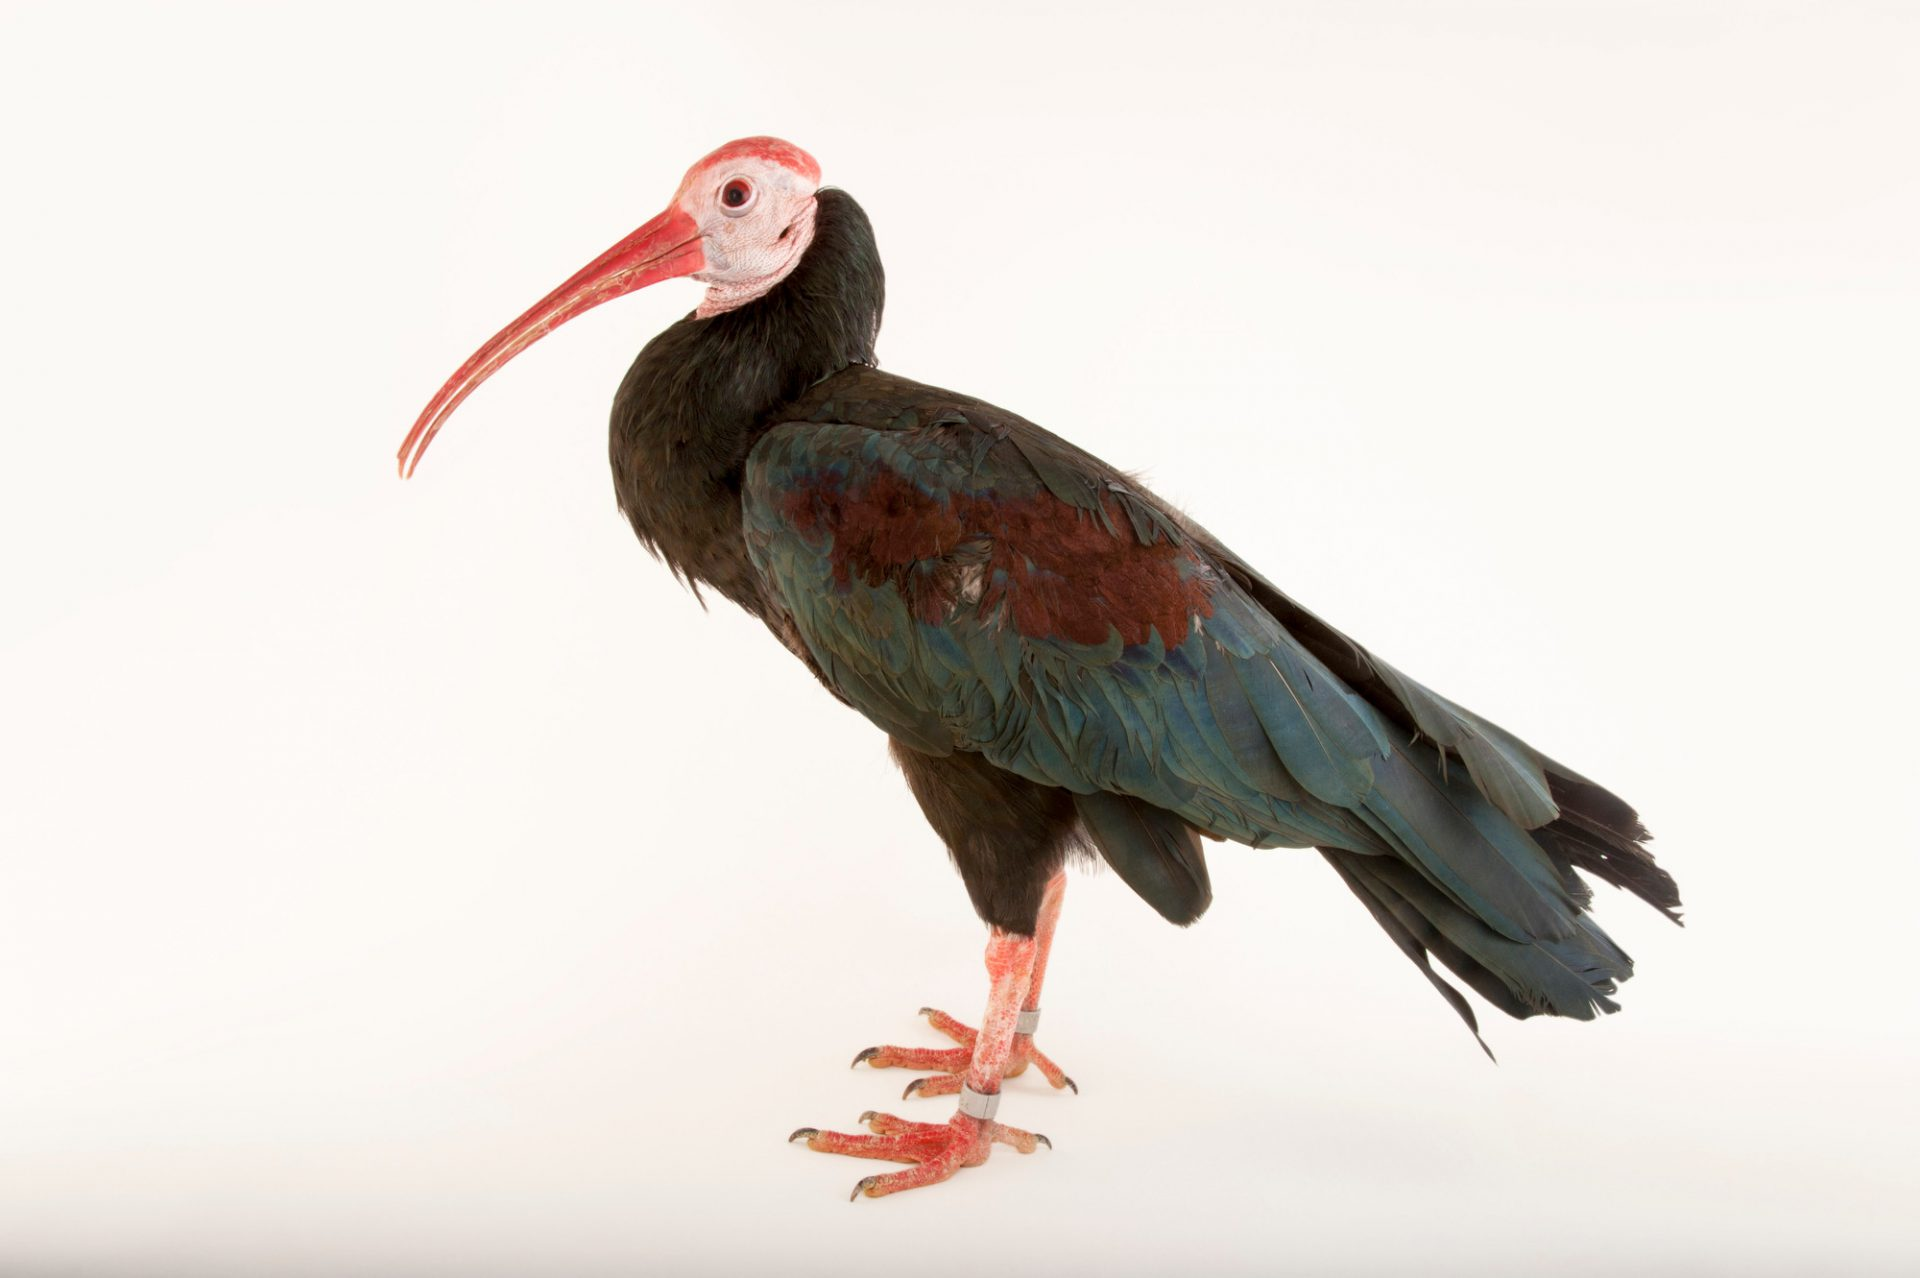 A vulnerable Southern bald ibis (Geronticus calvus) at the Houston Zoo.